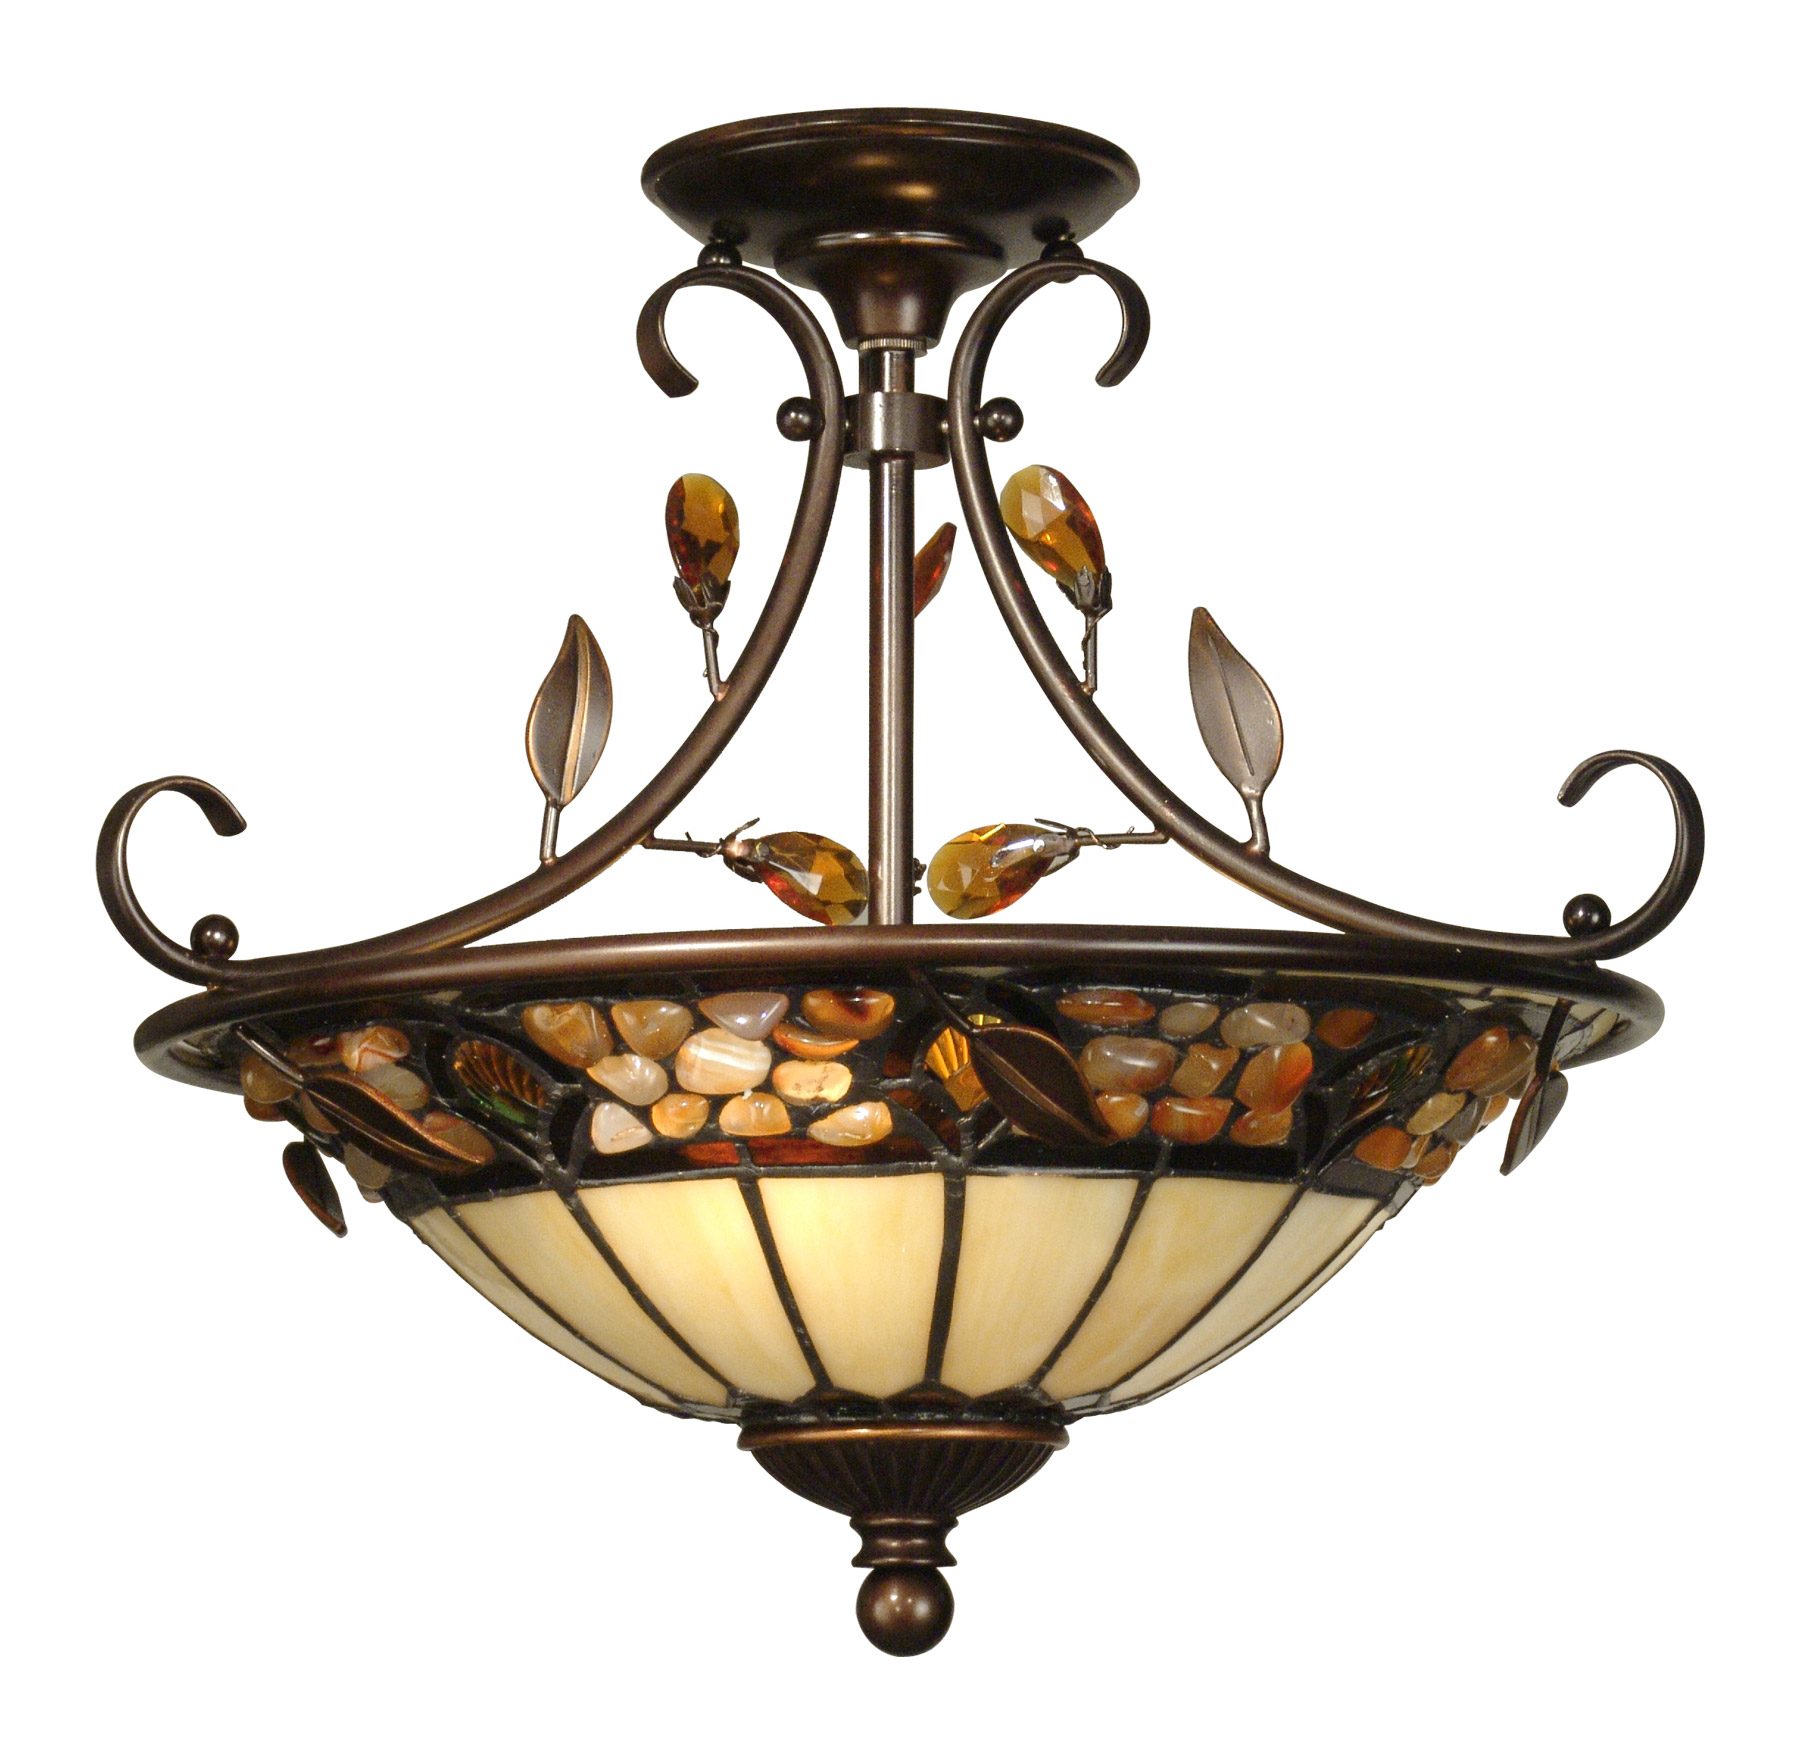 Tiffany Hanging Light Fixtures Lighting Close To Ceiling Light Fixtures Semi Flush Mount Dale Tiffany